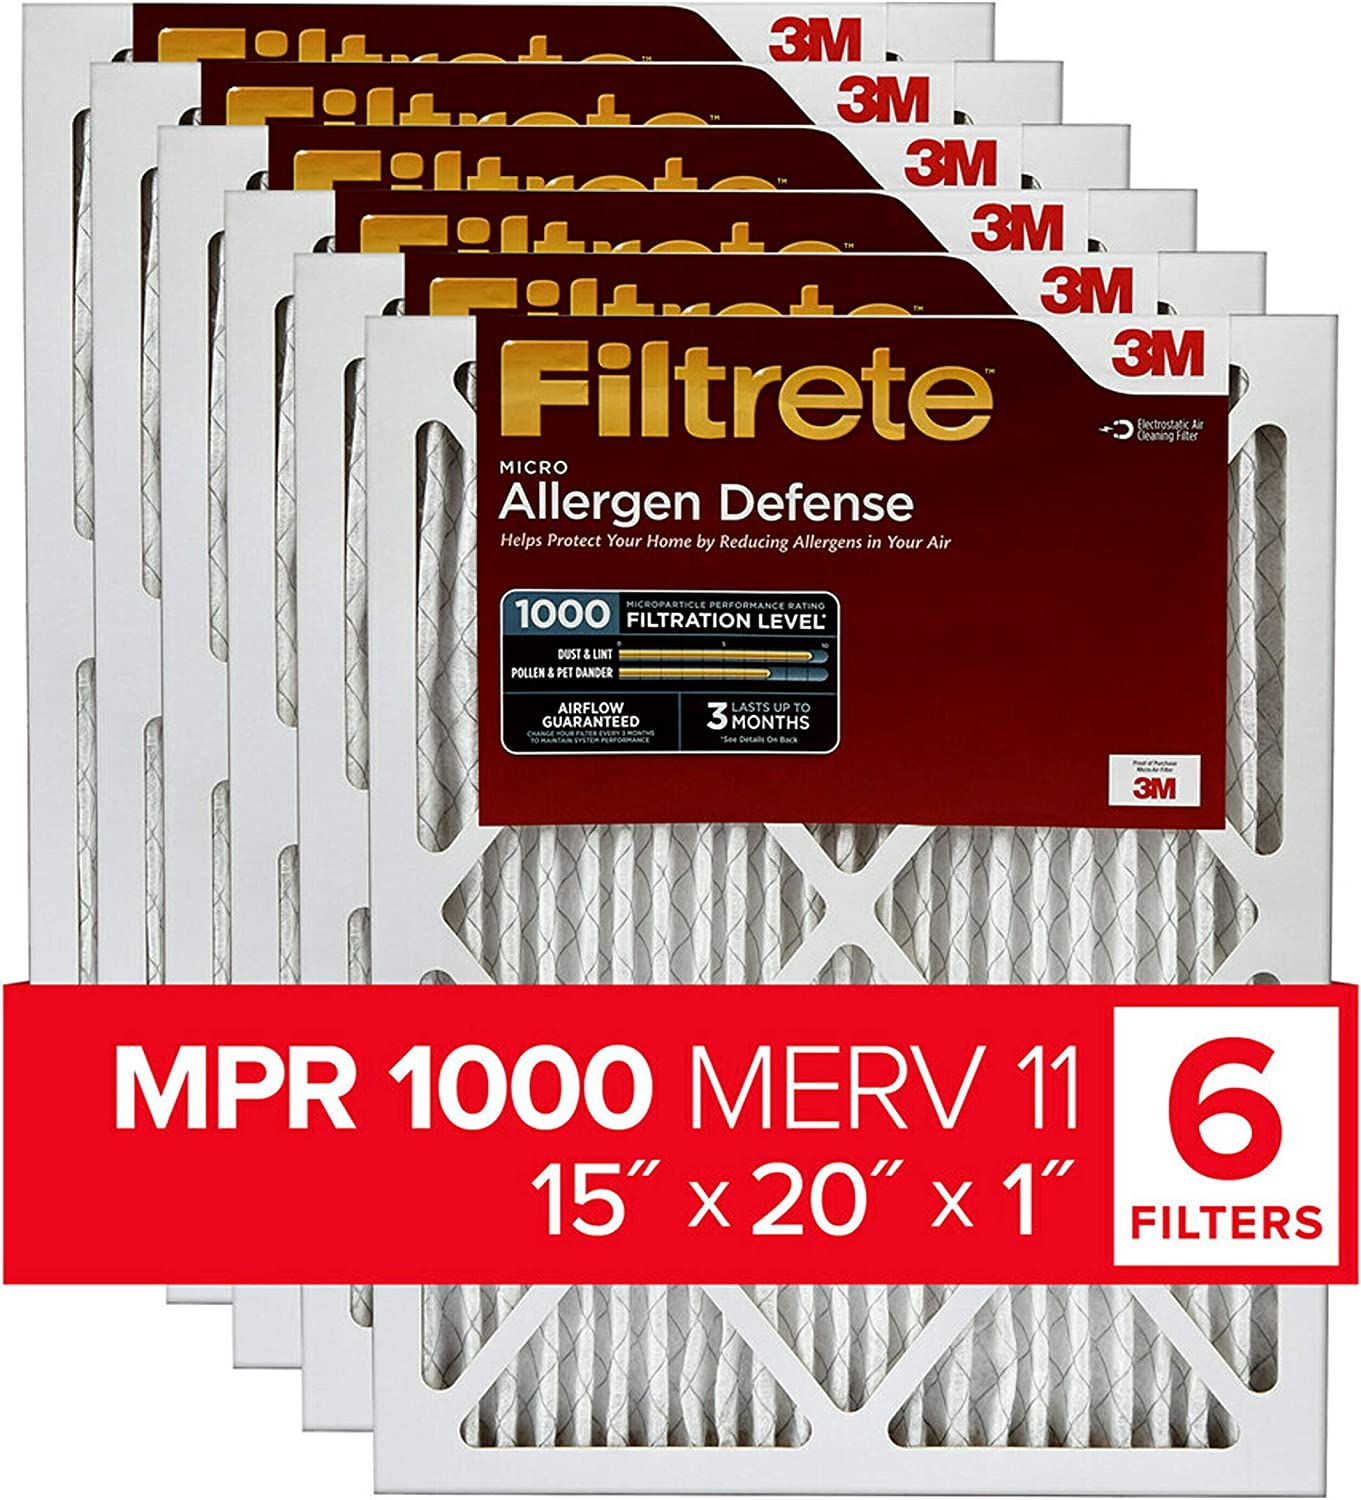 Micro Allergen Defense exact dimensions 11.81 x 19.81 x 0.81 6-Pack Filtrete 12x20x1 MPR 1000 AC Furnace Air Filter